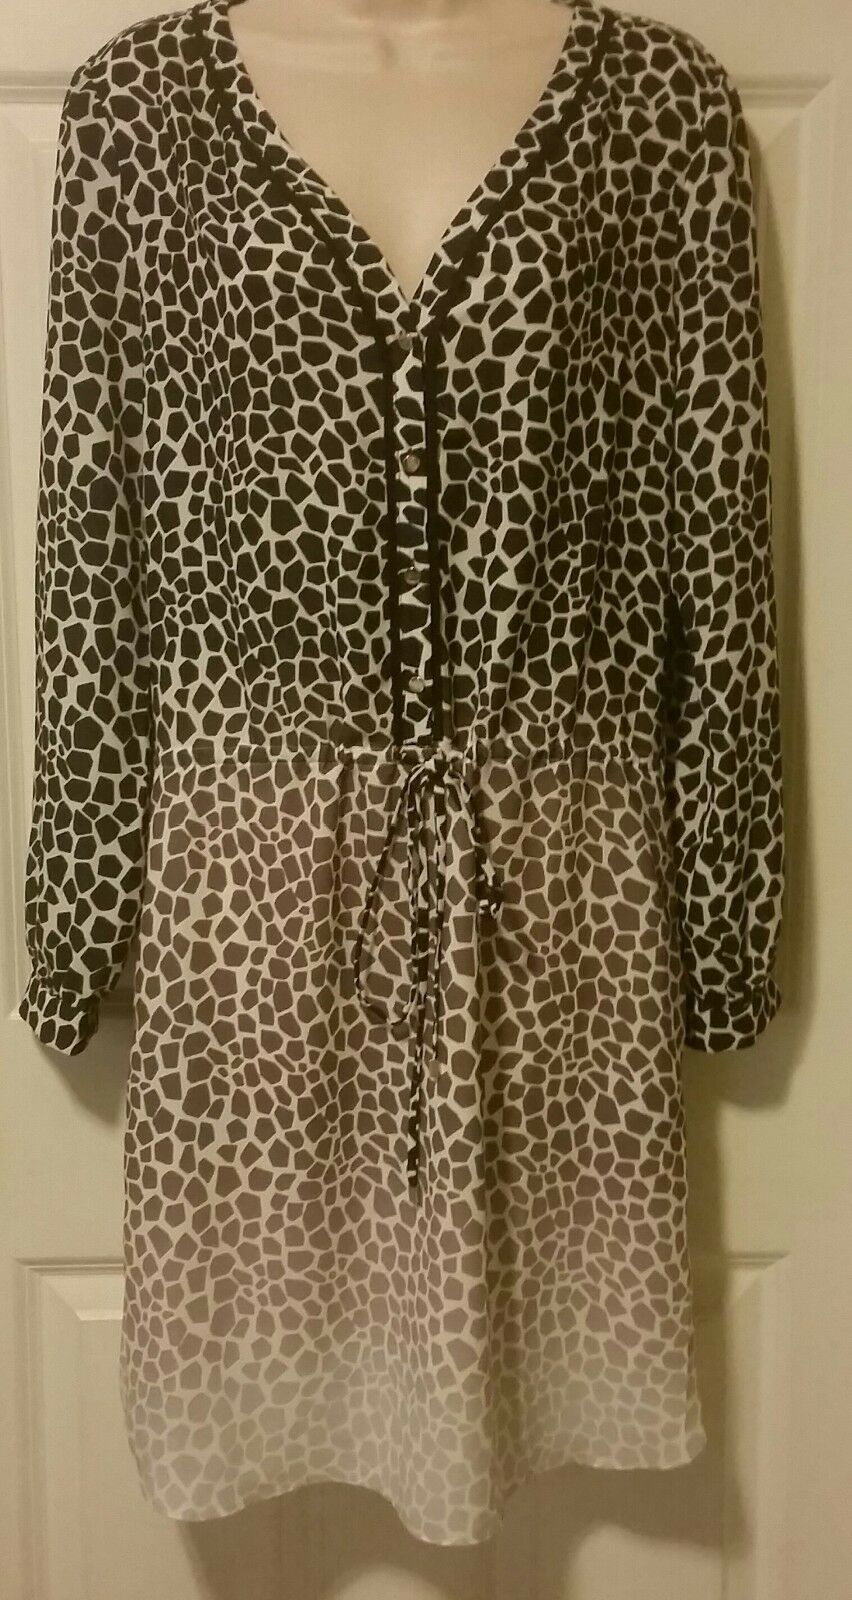 NWT Banana Republic SOLD OUT Animal Print Tri-ColGoldt hombre dress Sz 10 r.